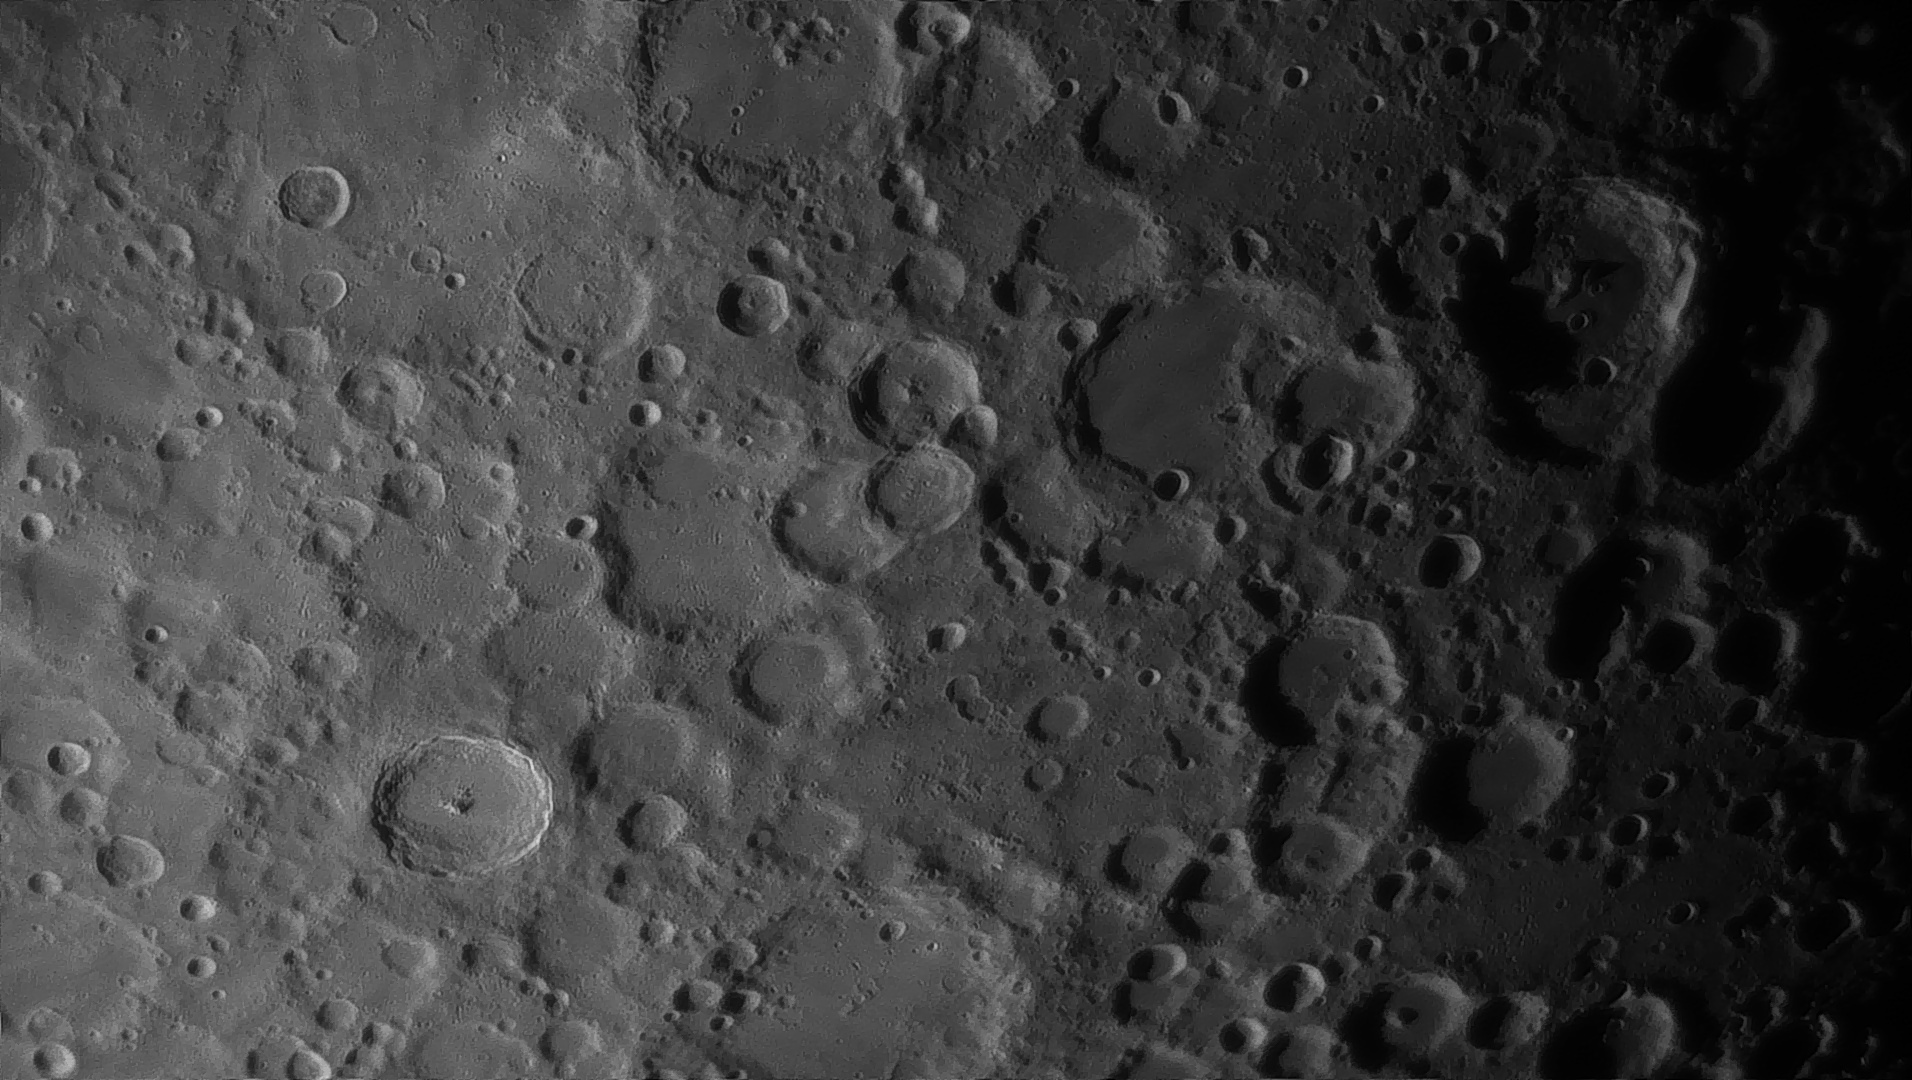 5e51963b1833f_Moon_054519_160120_ZWOASI290MM_Rouge_23A_AS_P35_lapl6_ap971_AI_Deconvolution_19--.jpg.768a9d065208691b161053fb47eb02e0.jpg